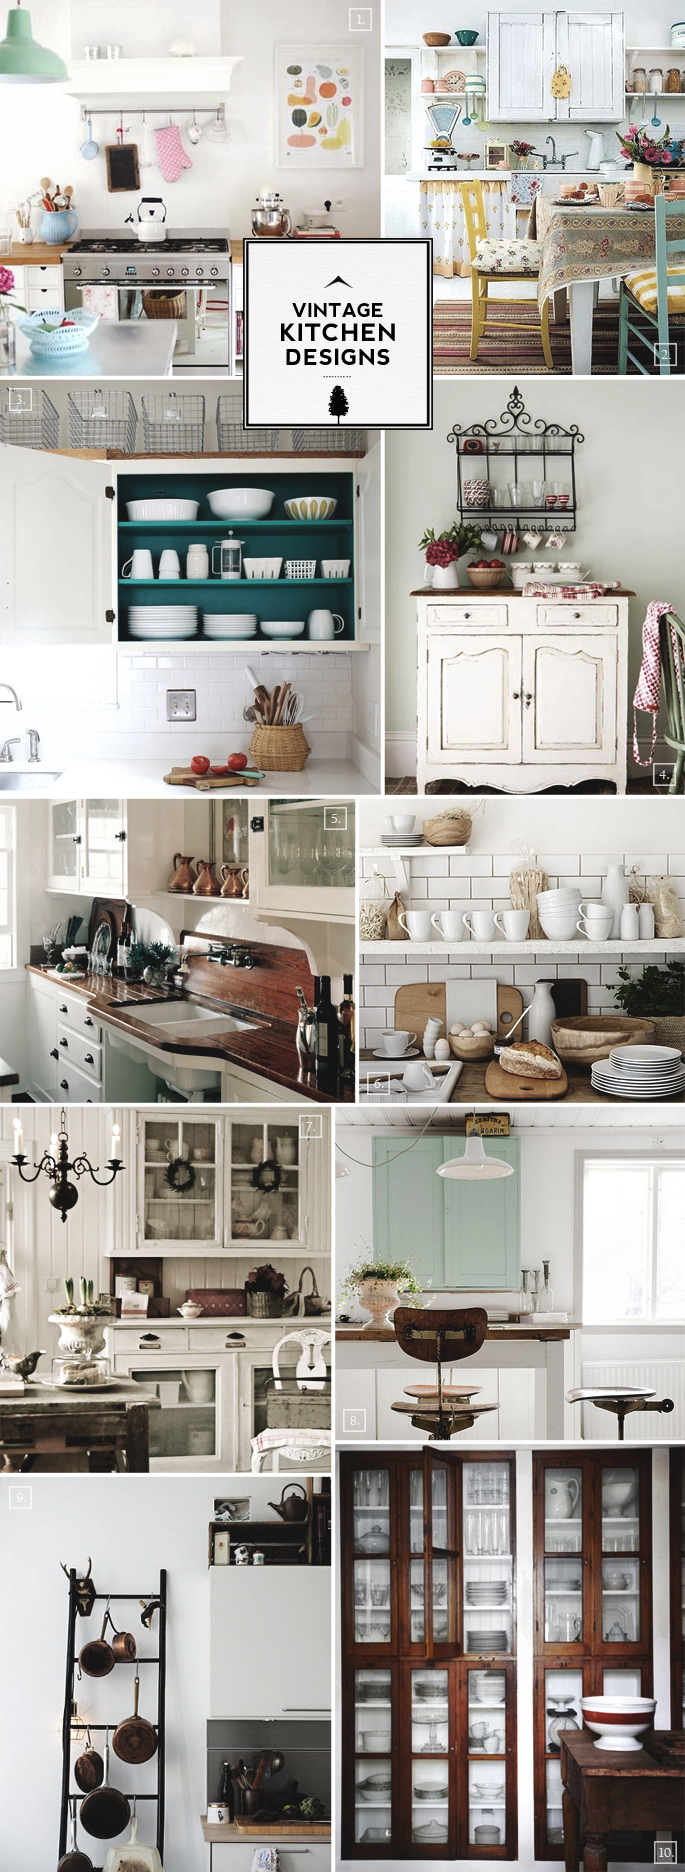 vintage kitchen design accessories and decor ideas